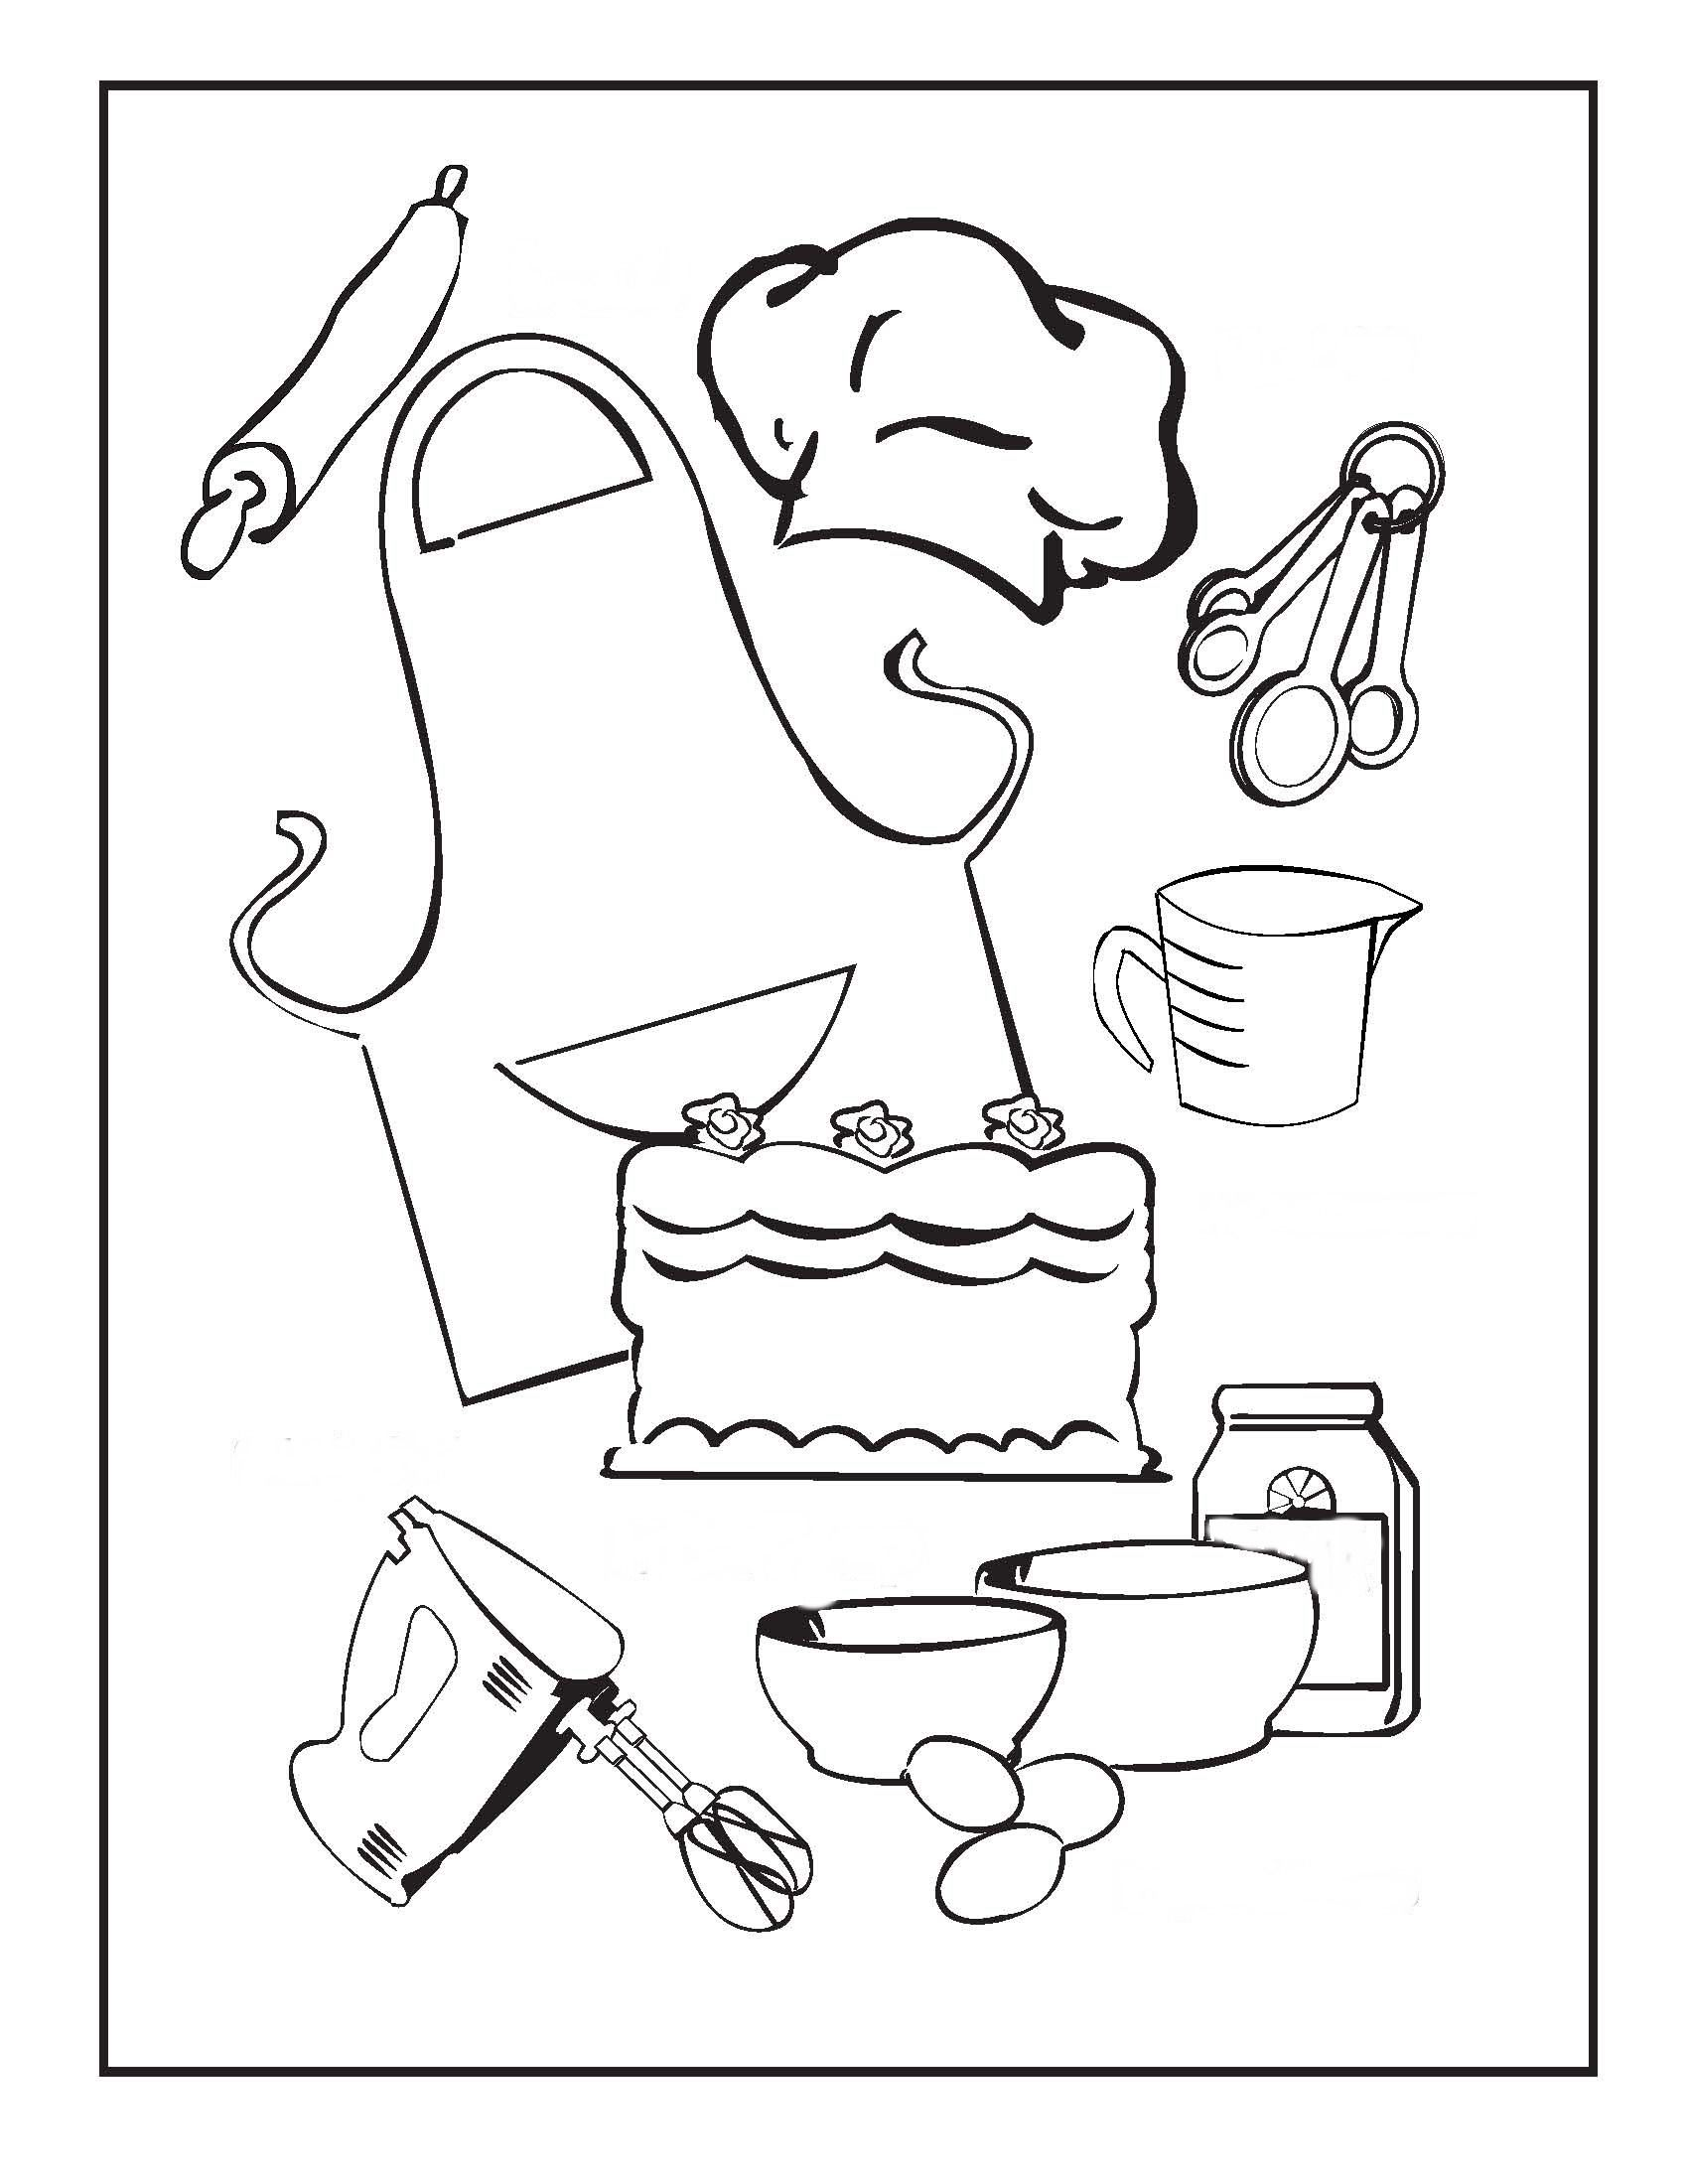 Cooking and Baking Coloring Pages – Birthday Printable | Recipes to ...